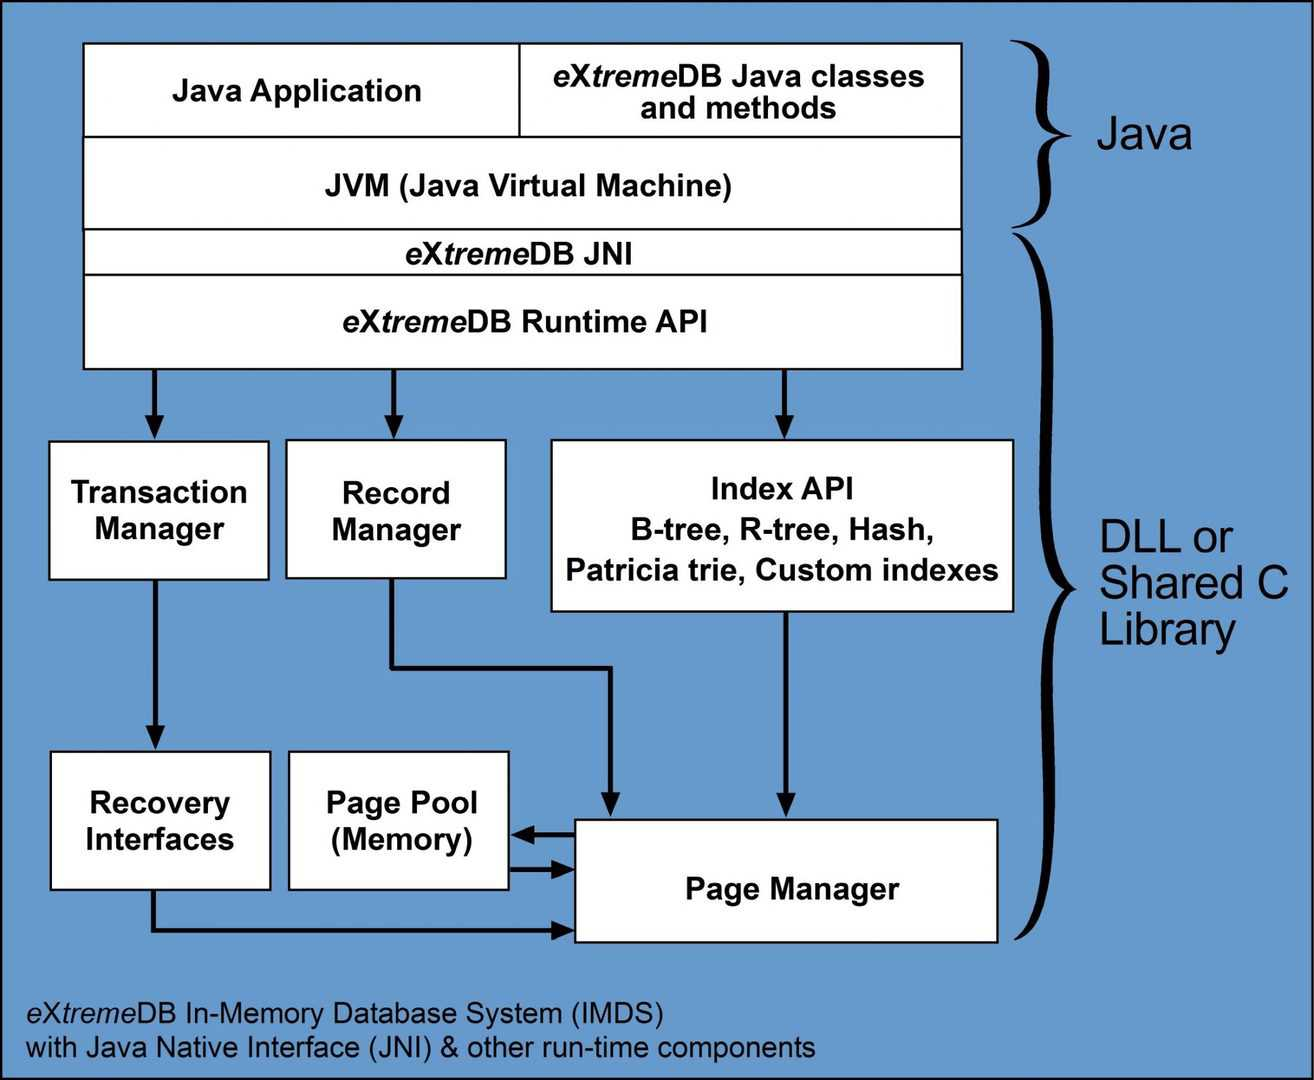 A Java application with eXtremeDB JNI benefits from native access to database functions running in compiled C